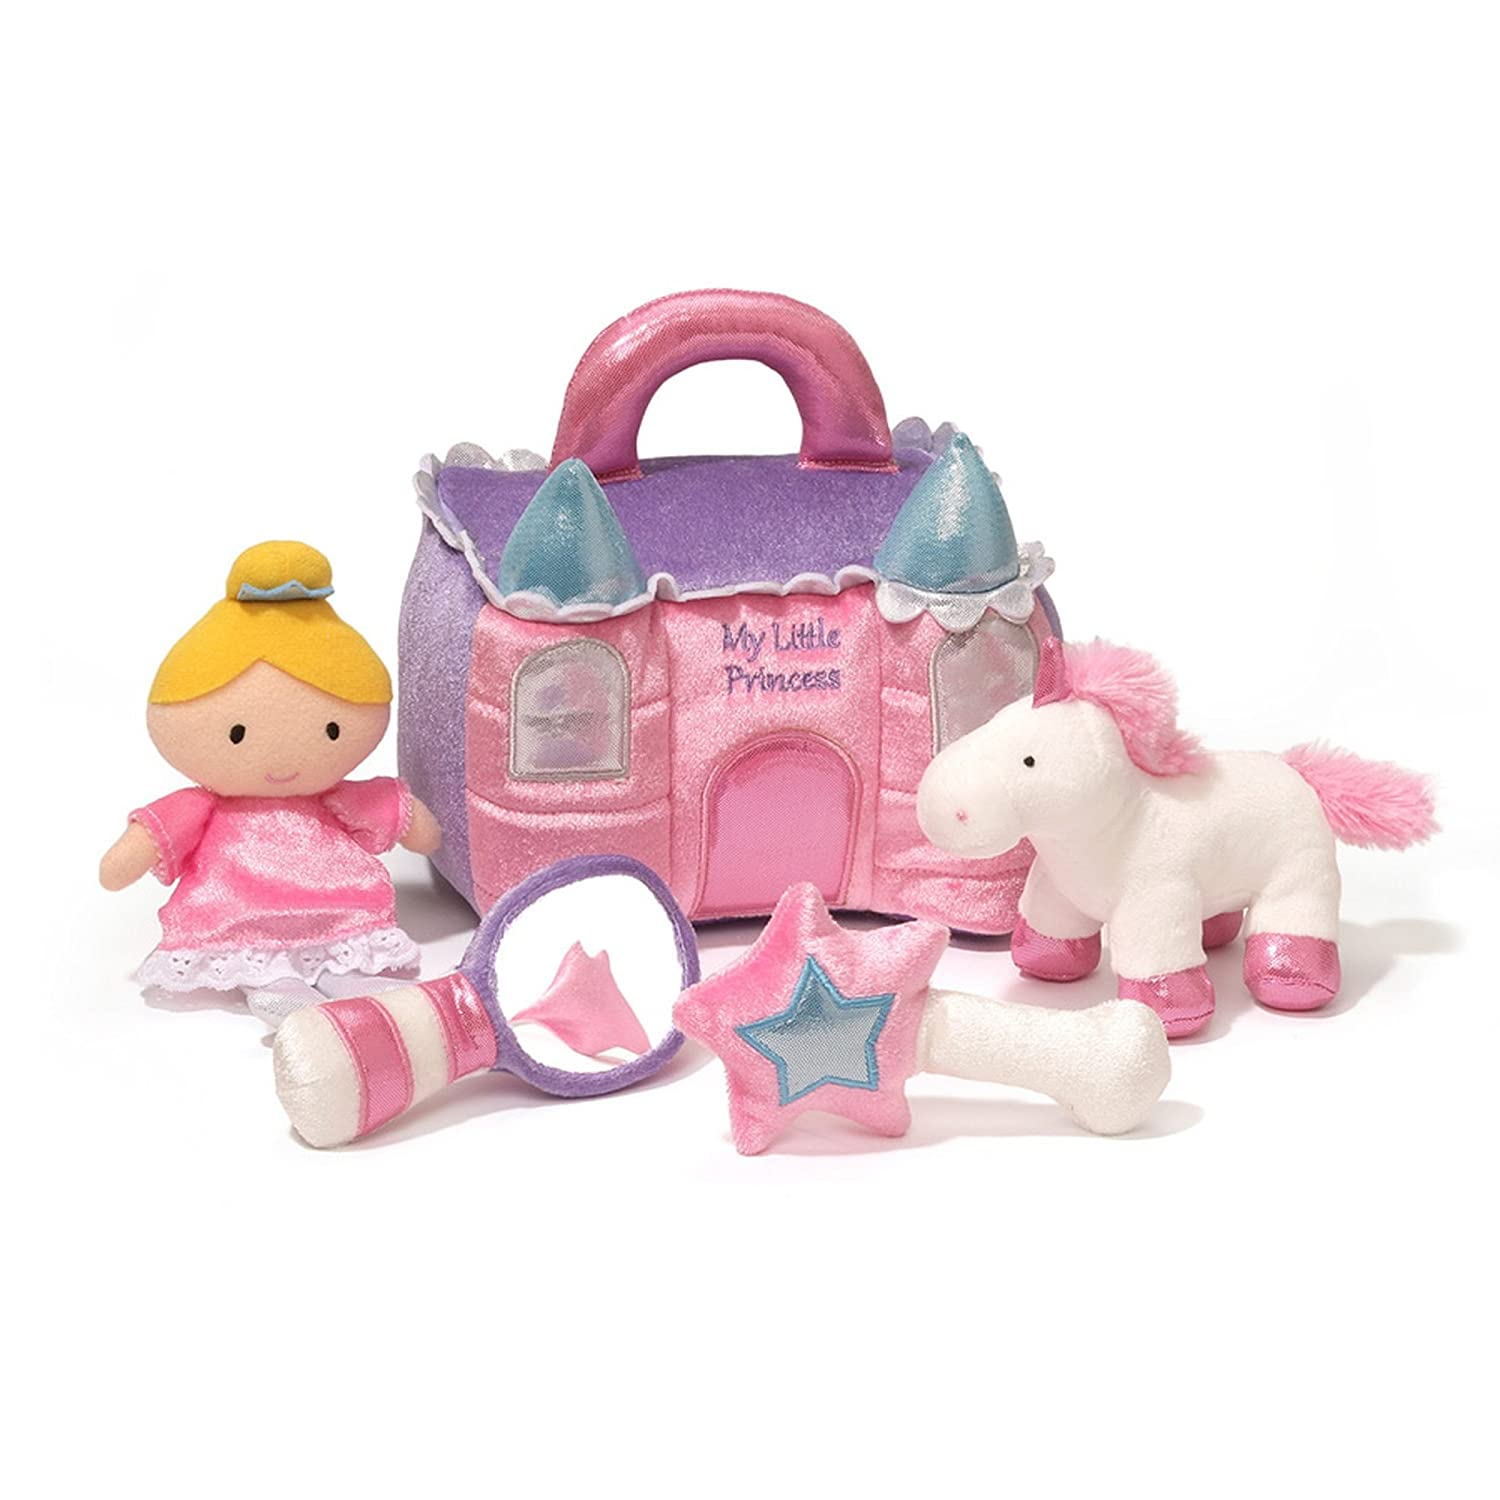 23 Best Unicorn Toys and Gifts for Girls Reviews of 2021 36